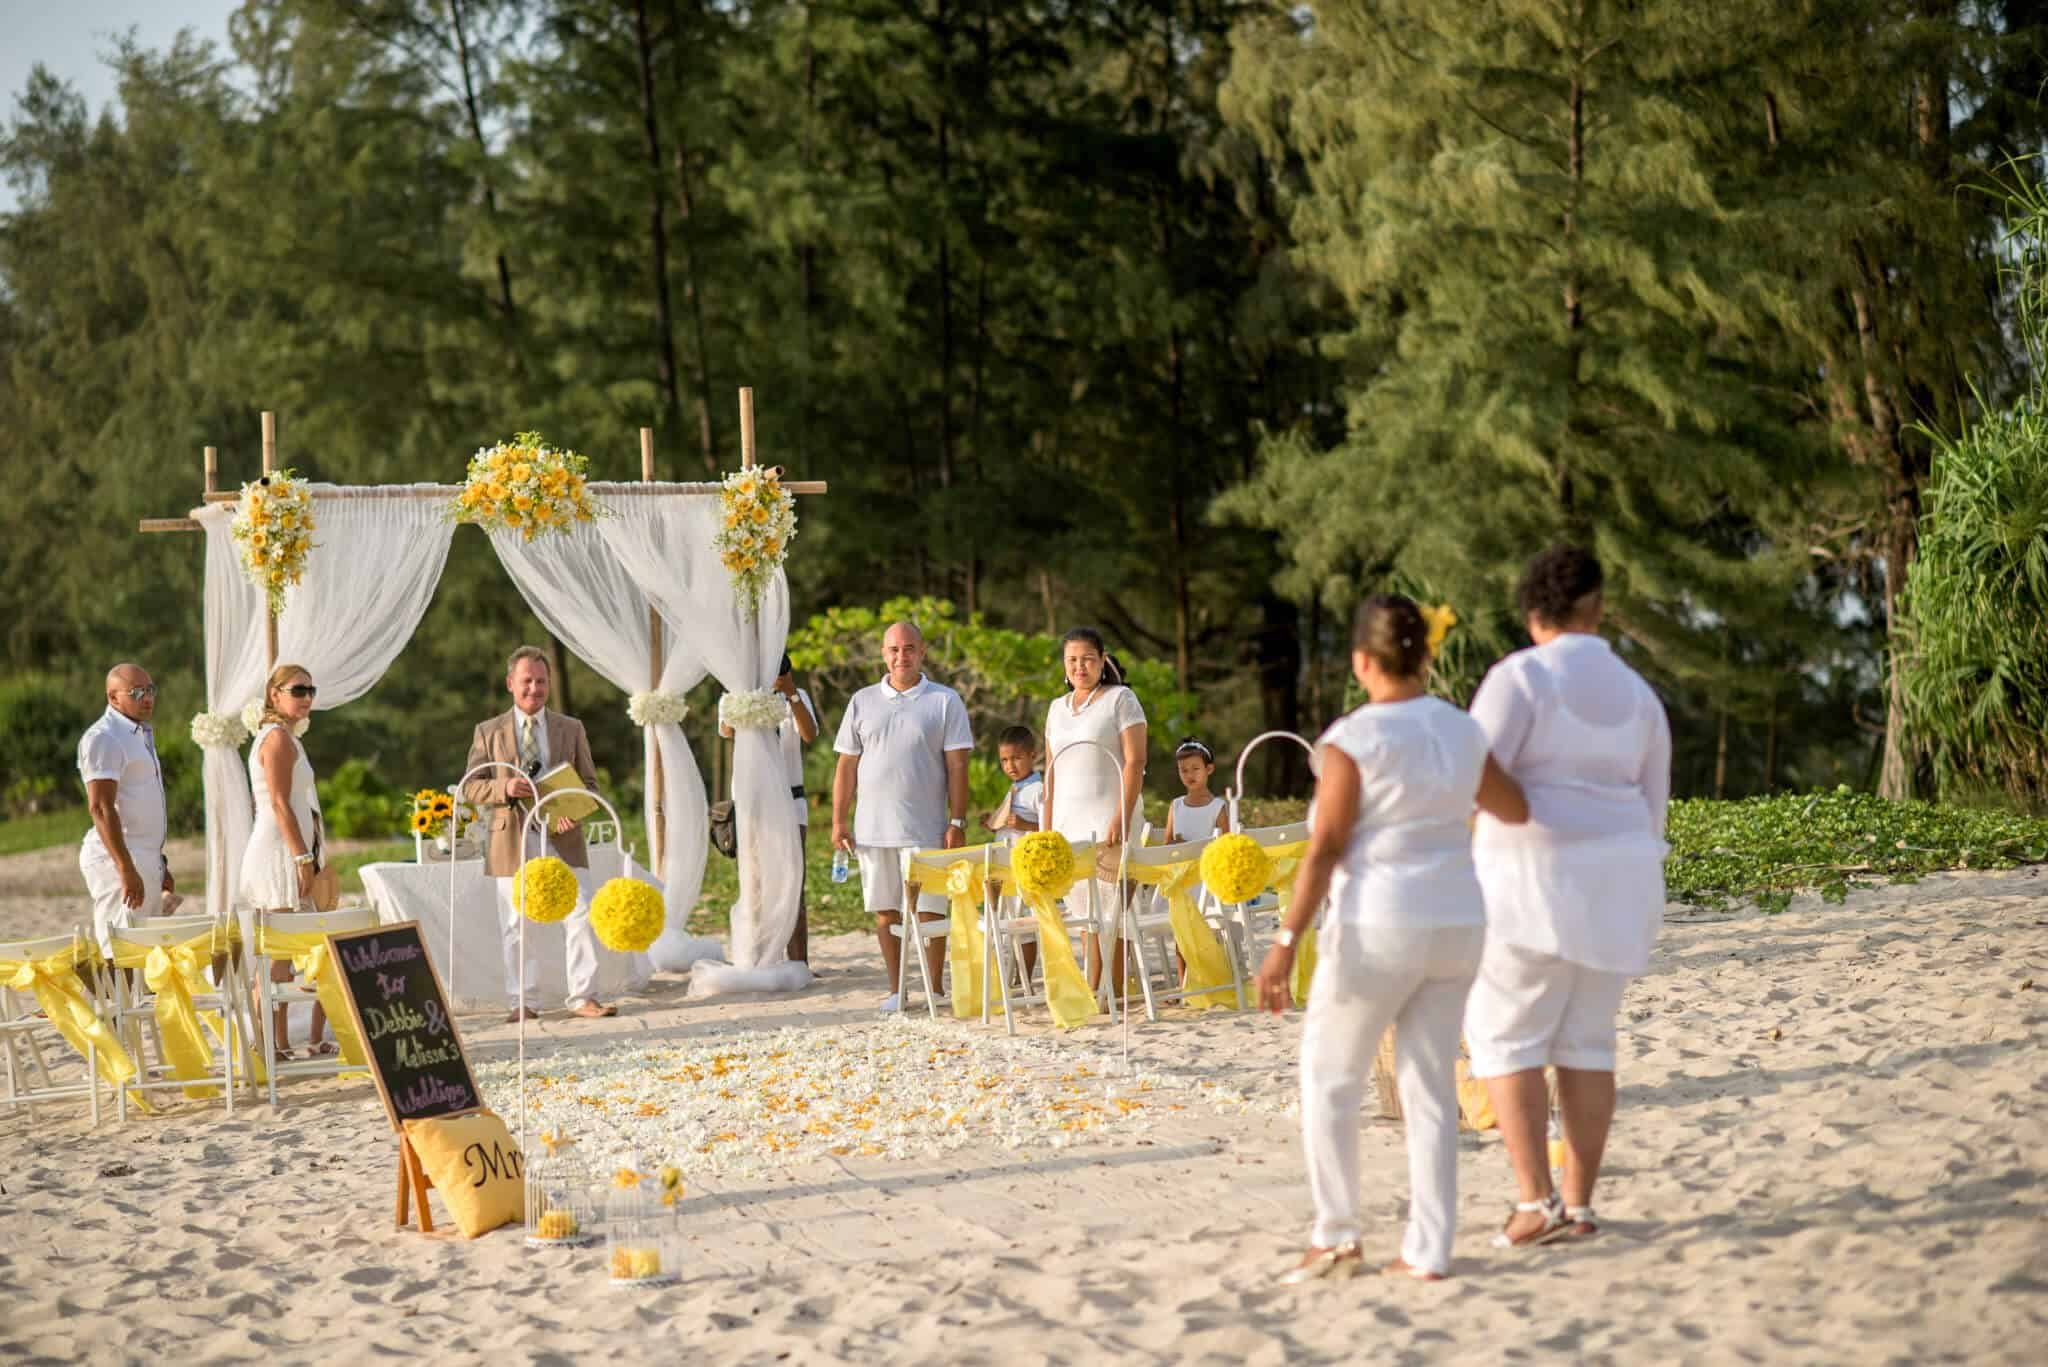 Phuket beach marriage celebrant (5)